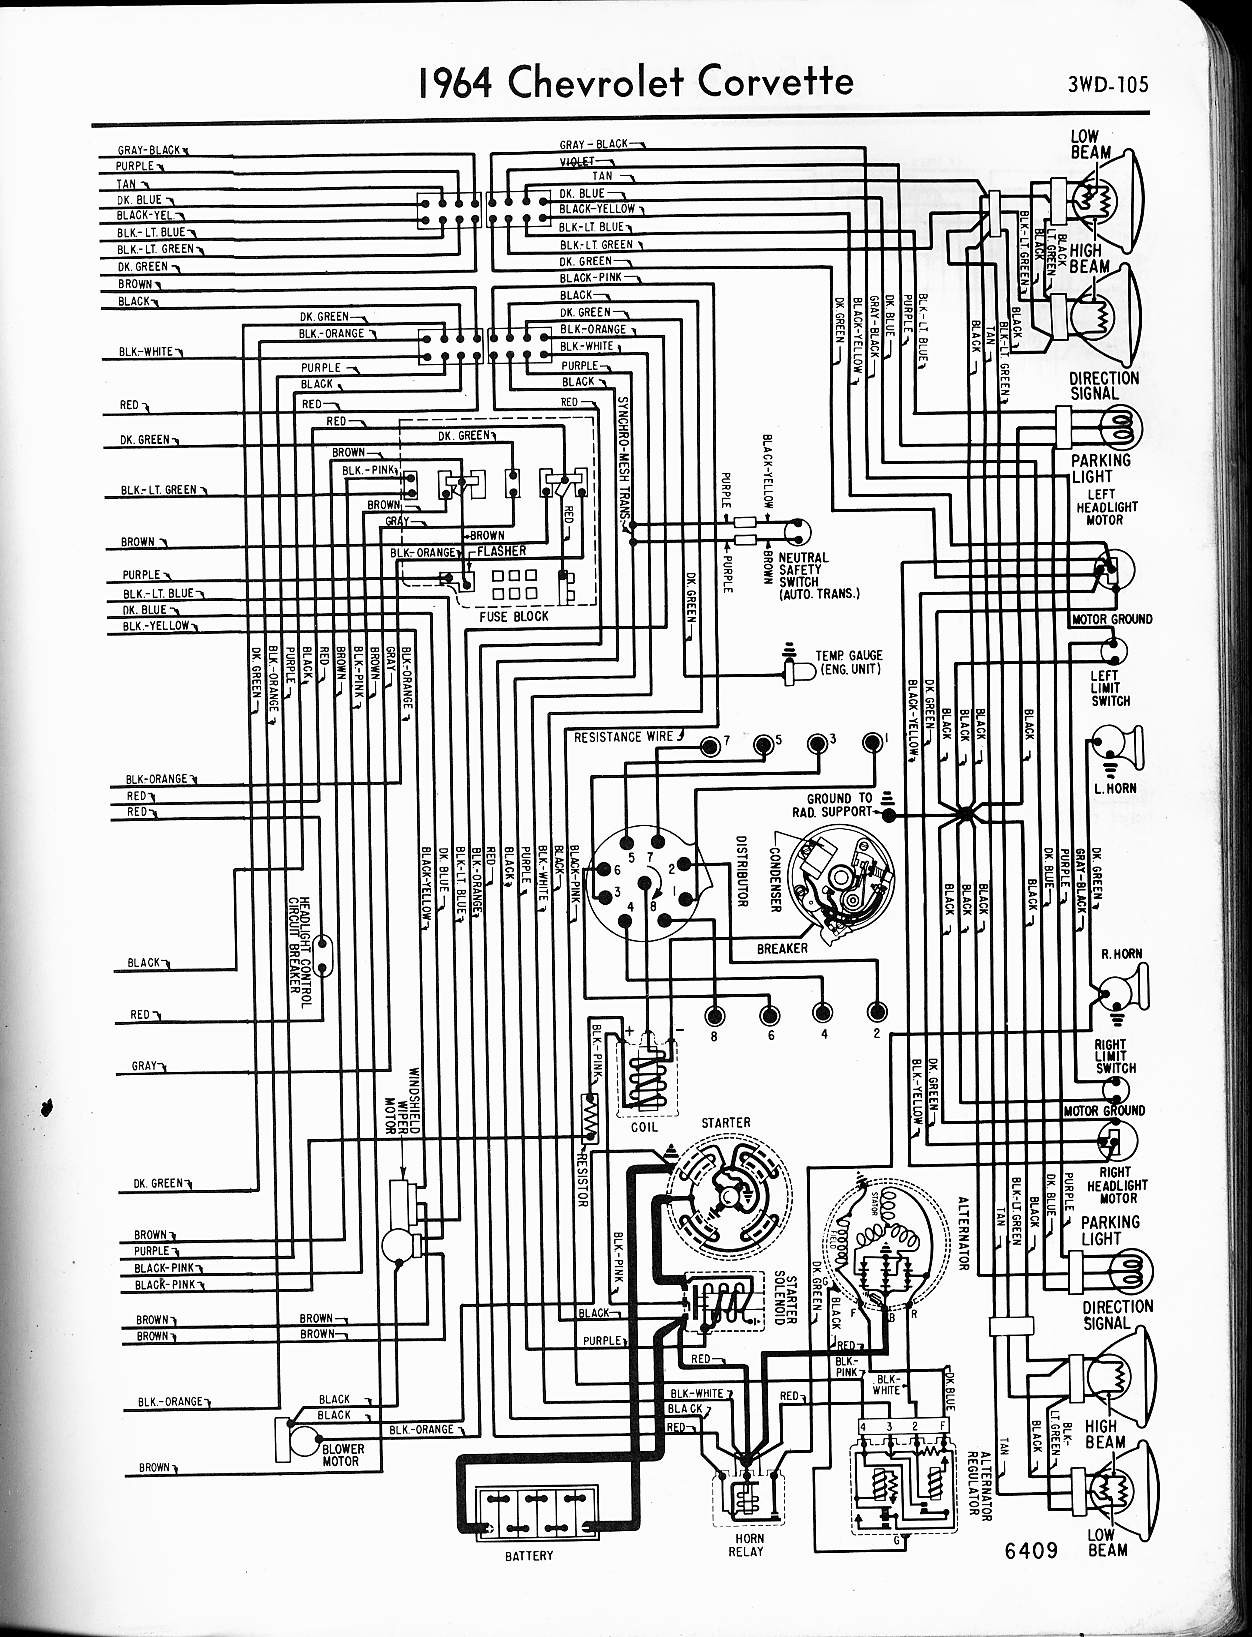 1981 Corvette Wiper Wiring Diagram Wiring Library